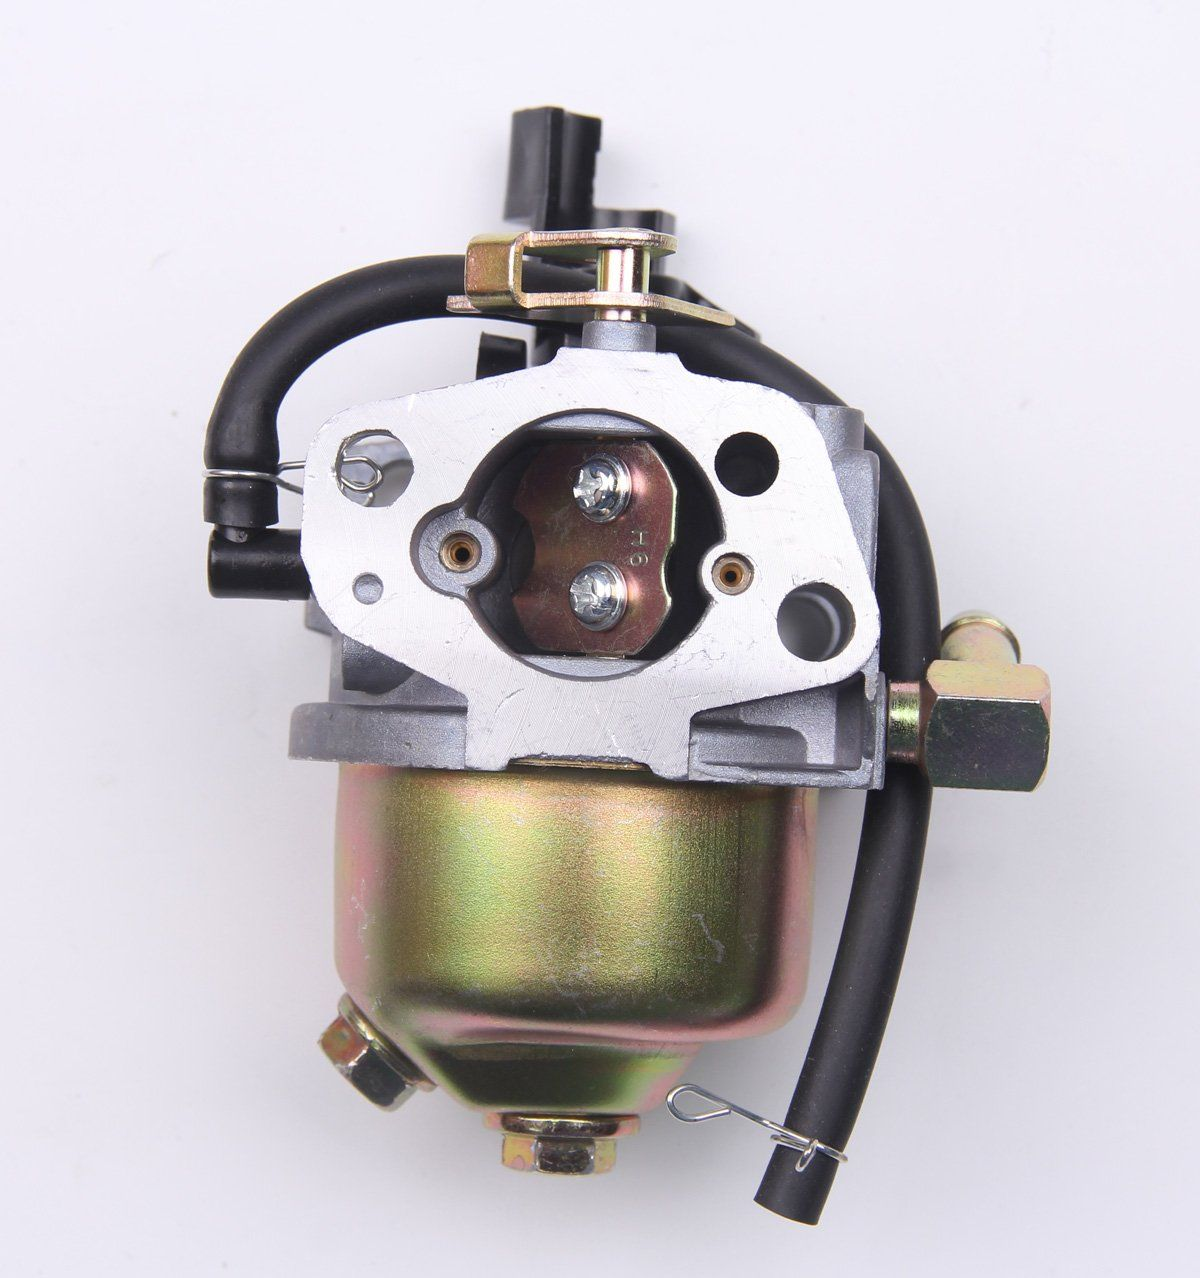 new carburetor with gaskets primer and fuel filter for troy bilt mtd cub cadet snow blower 95114026a 95114027a 95110638a see this great product  [ 1200 x 1278 Pixel ]